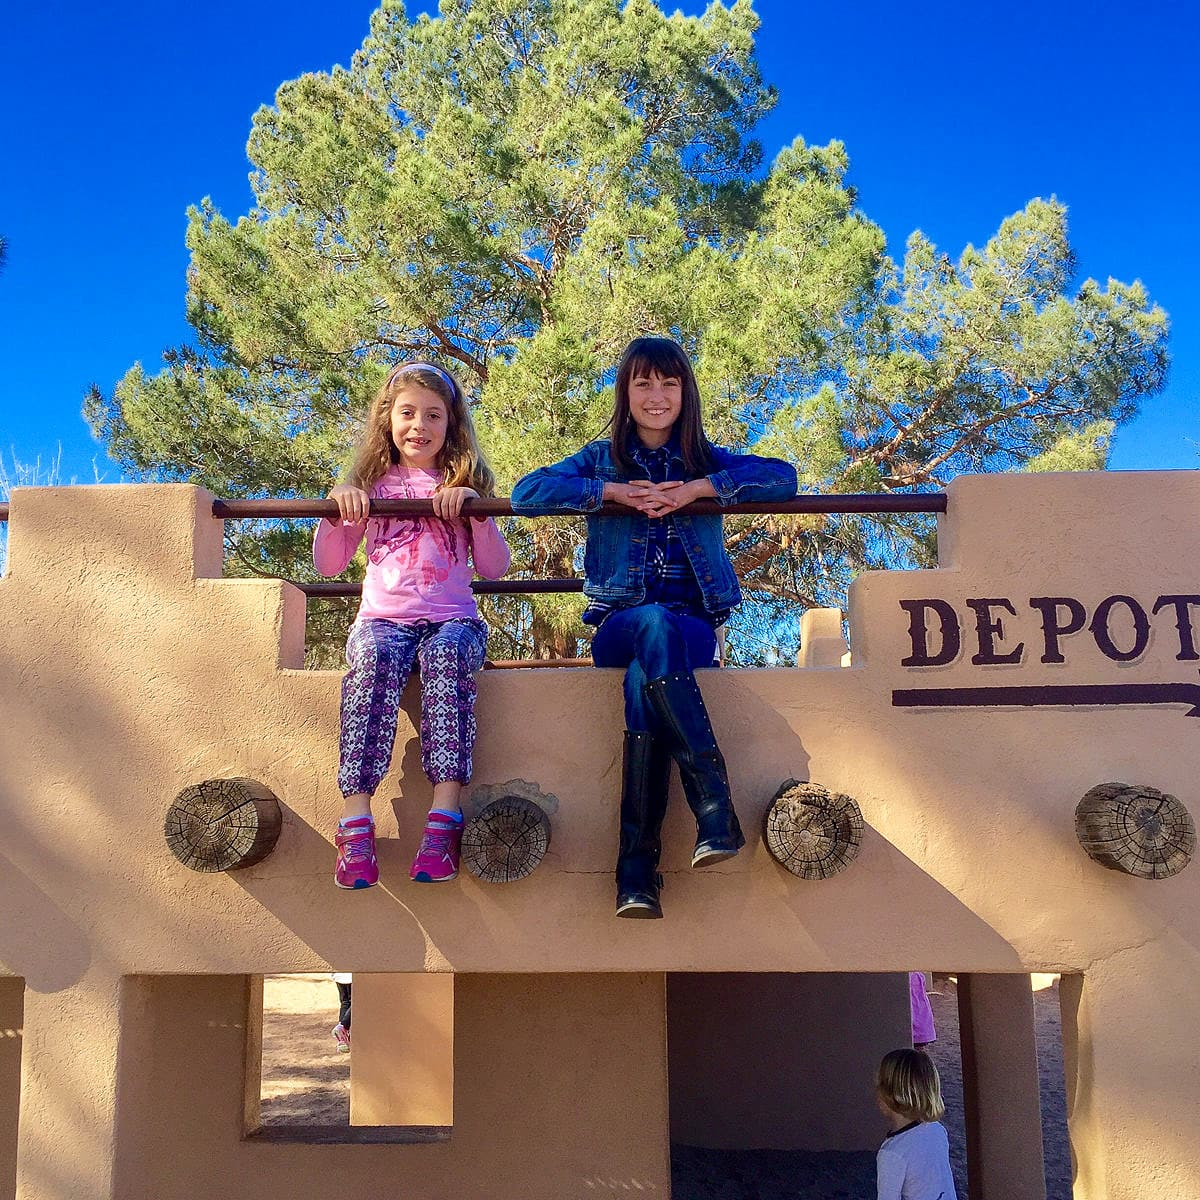 Old West-themed Playground at McCormick-Stillman Railroad Park in Scottsdale with Kids